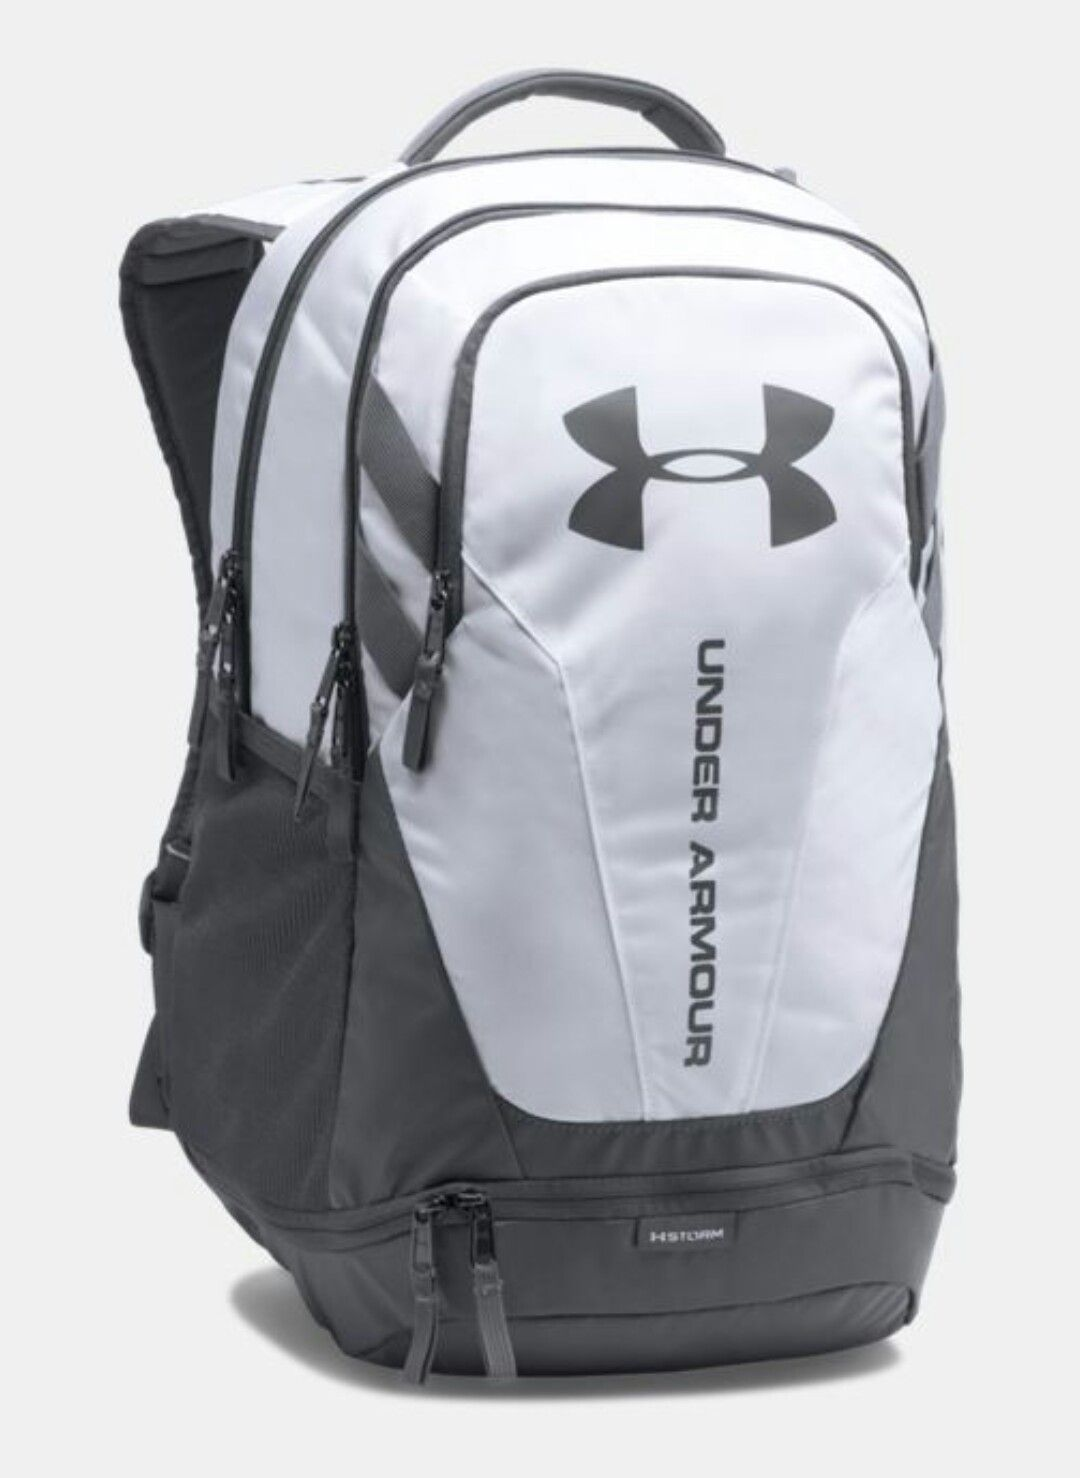 White Under Armor Bag School Outfits In 2019